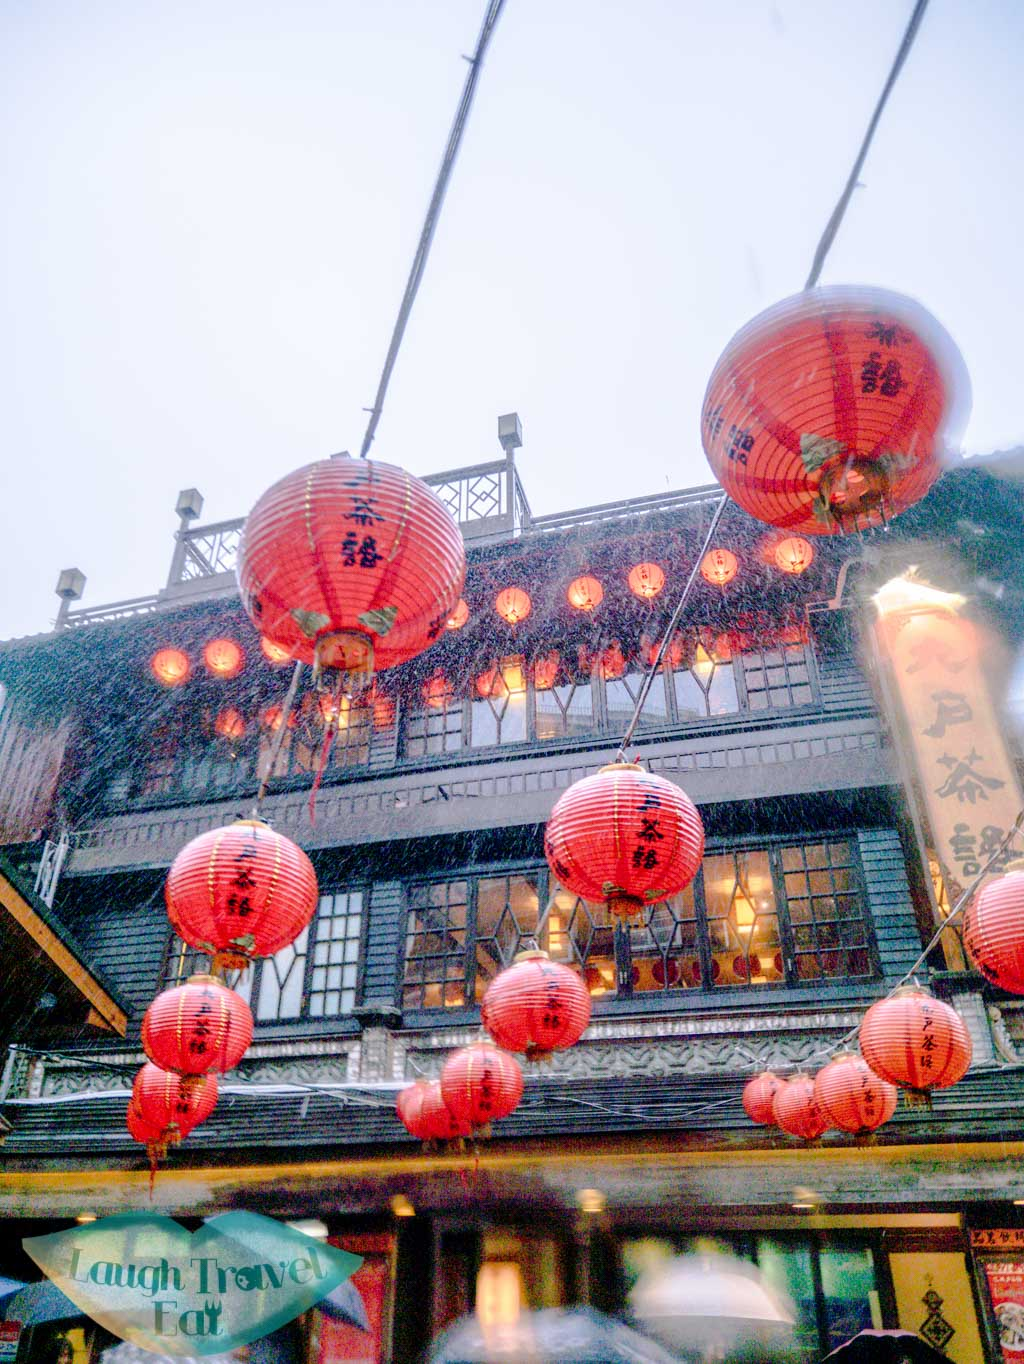 square opposite shengqing theater ruifang taiwan - Laugh Travel Eat